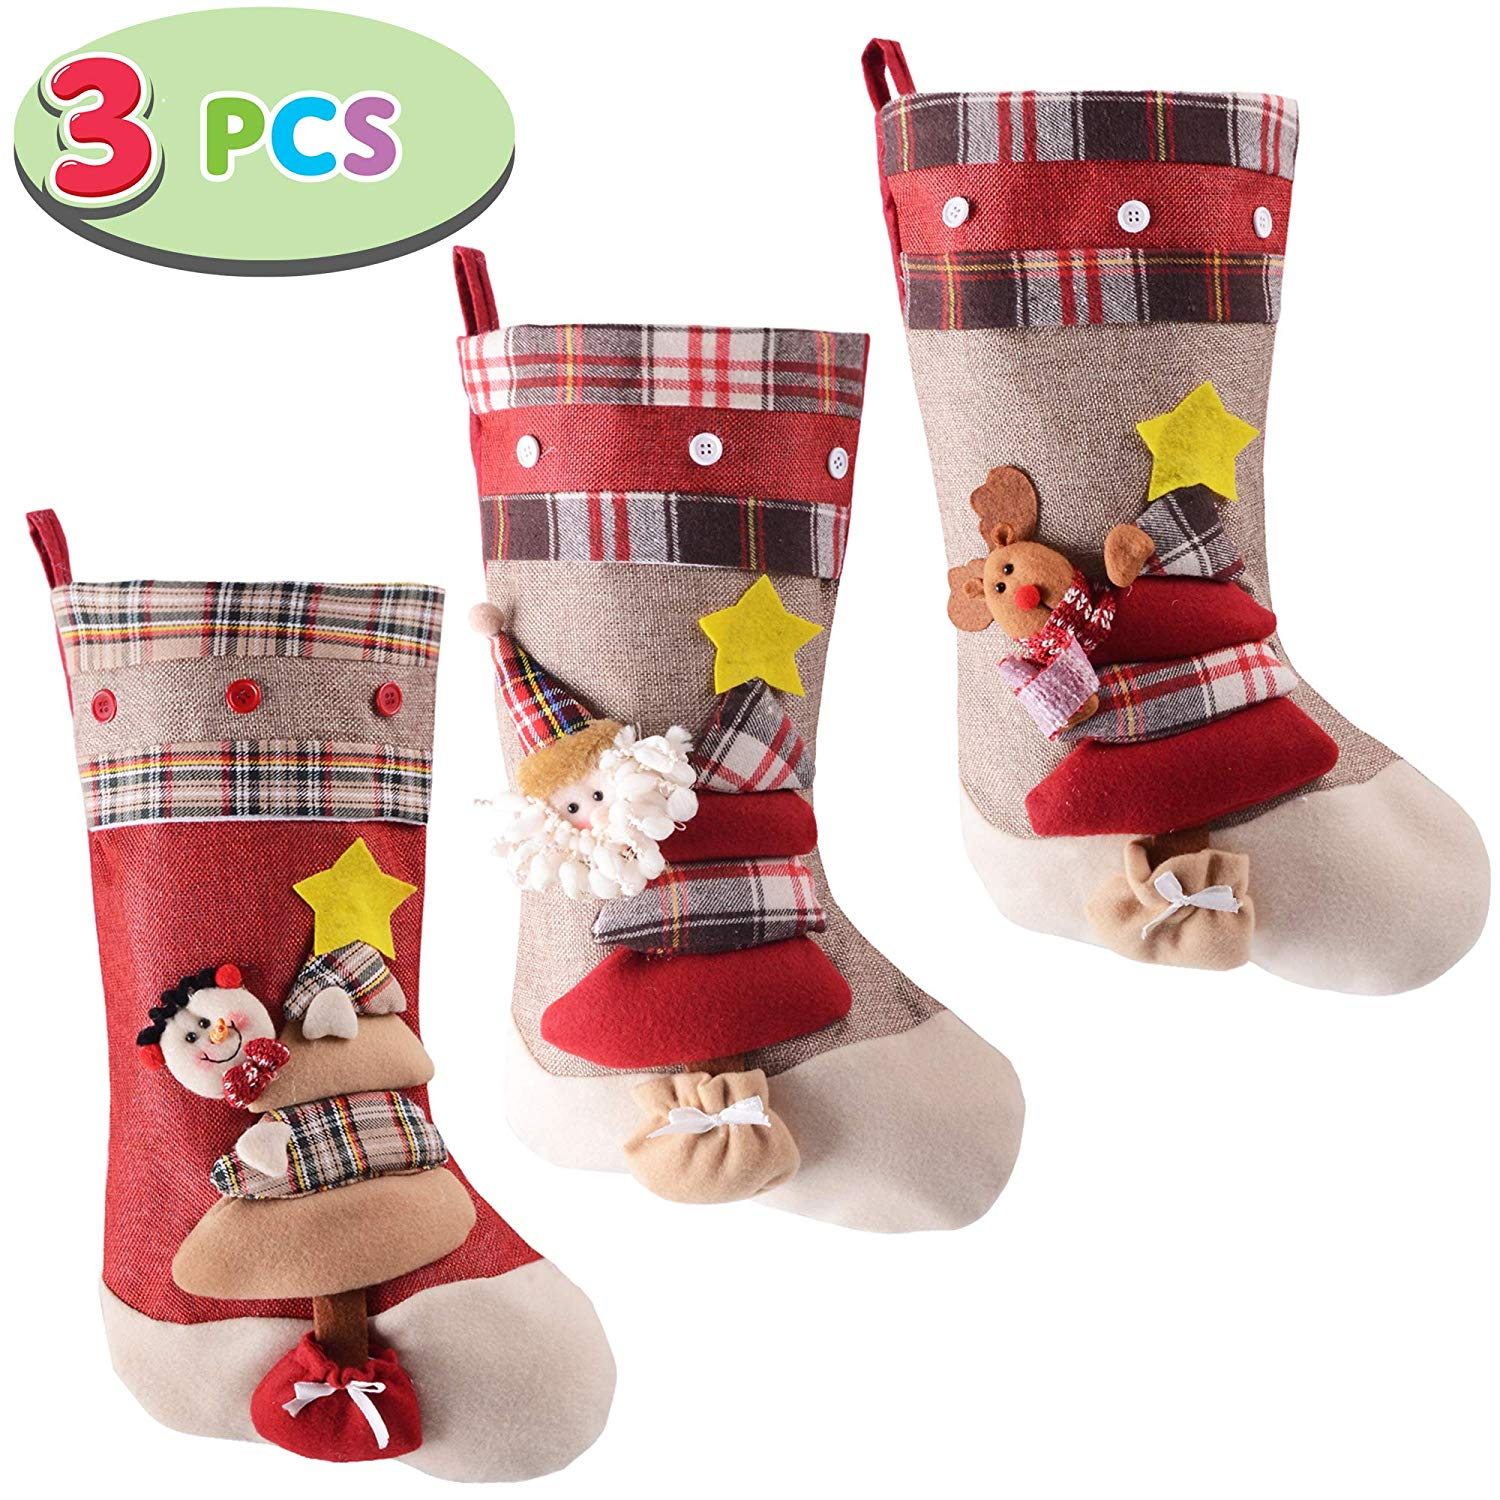 "3 Pack 18"" 3D Burlap Christmas Stockings"